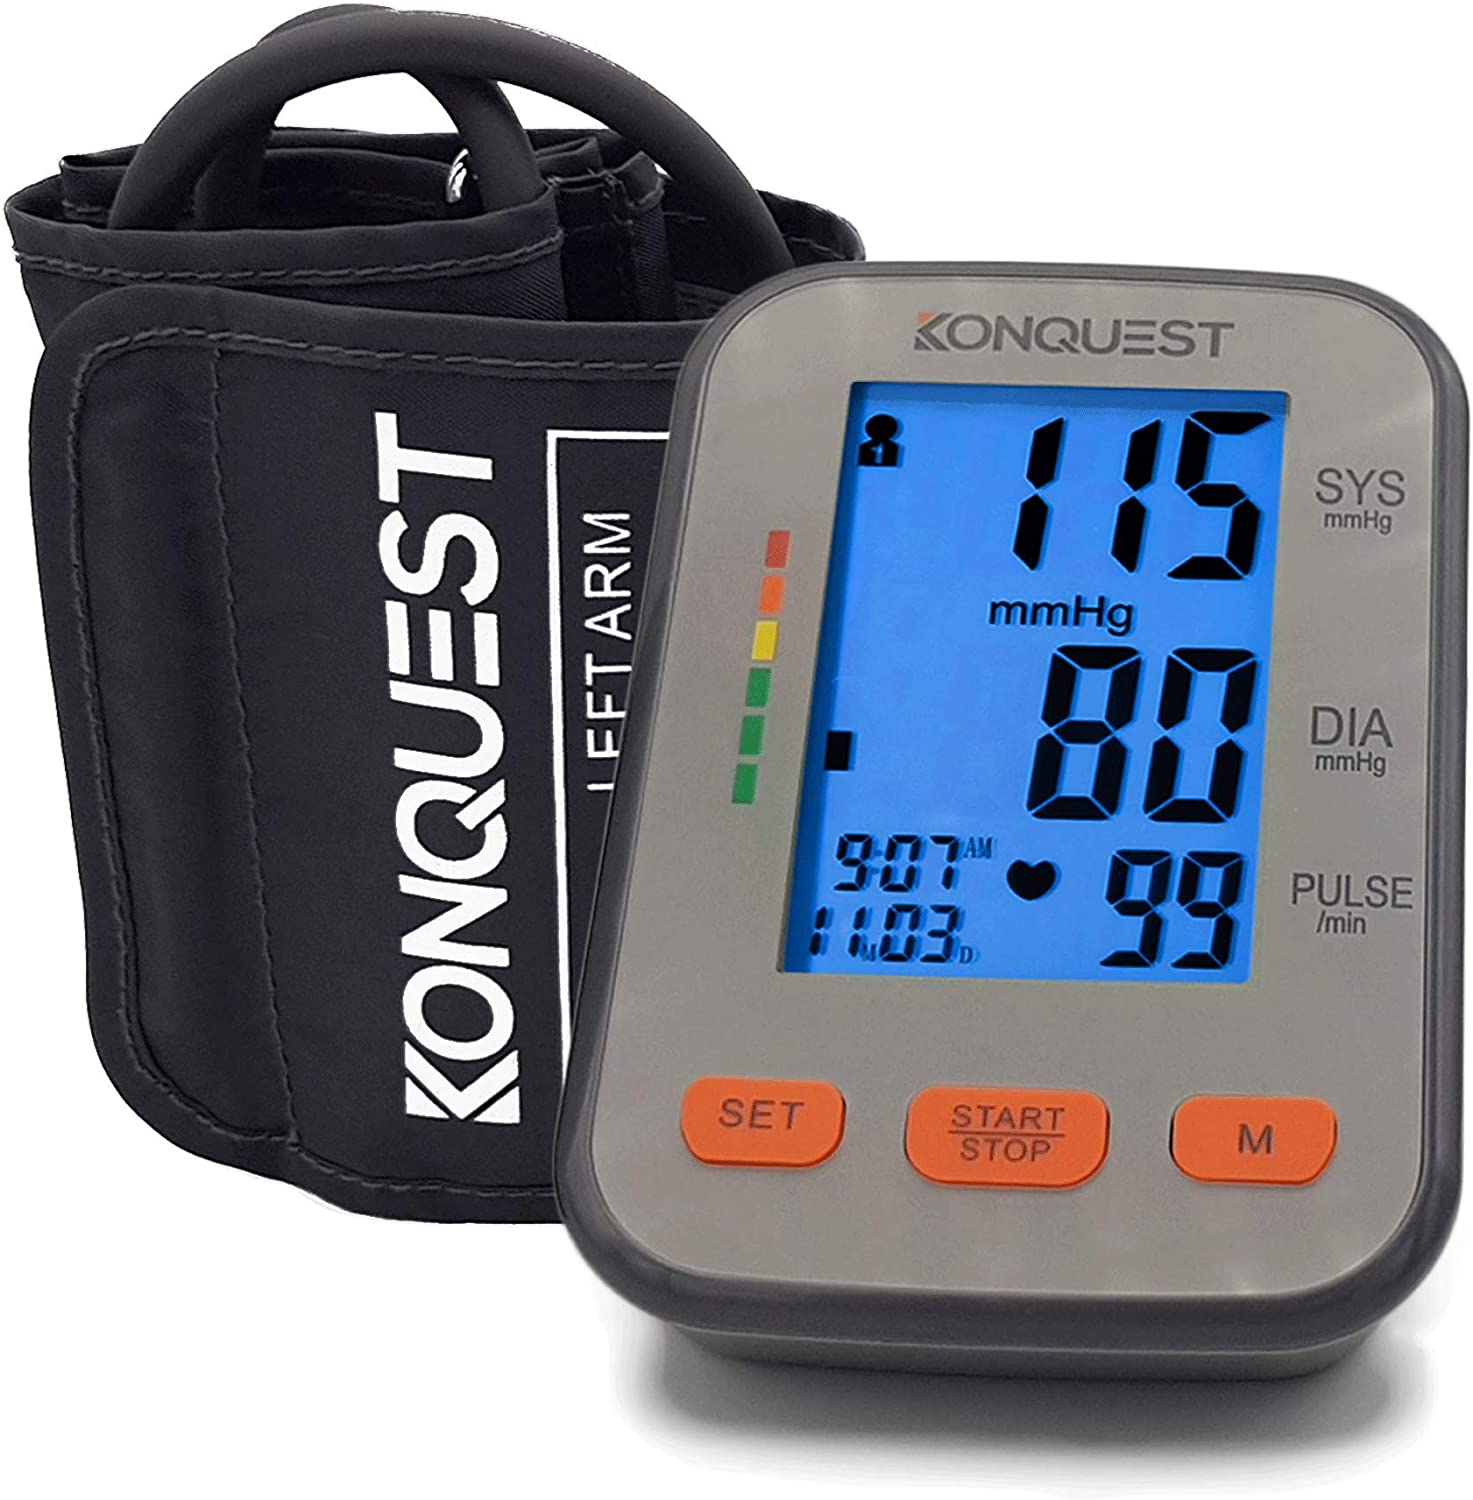 Konquest KBP-2704A Automatic Upper Arm Blood Pressure Monitor - Accurate, FDA Registered - Adjustable Cuff, Large Backlit Display - Irregular Heartbeat & Hypertension Detector - Tensiometro Digital